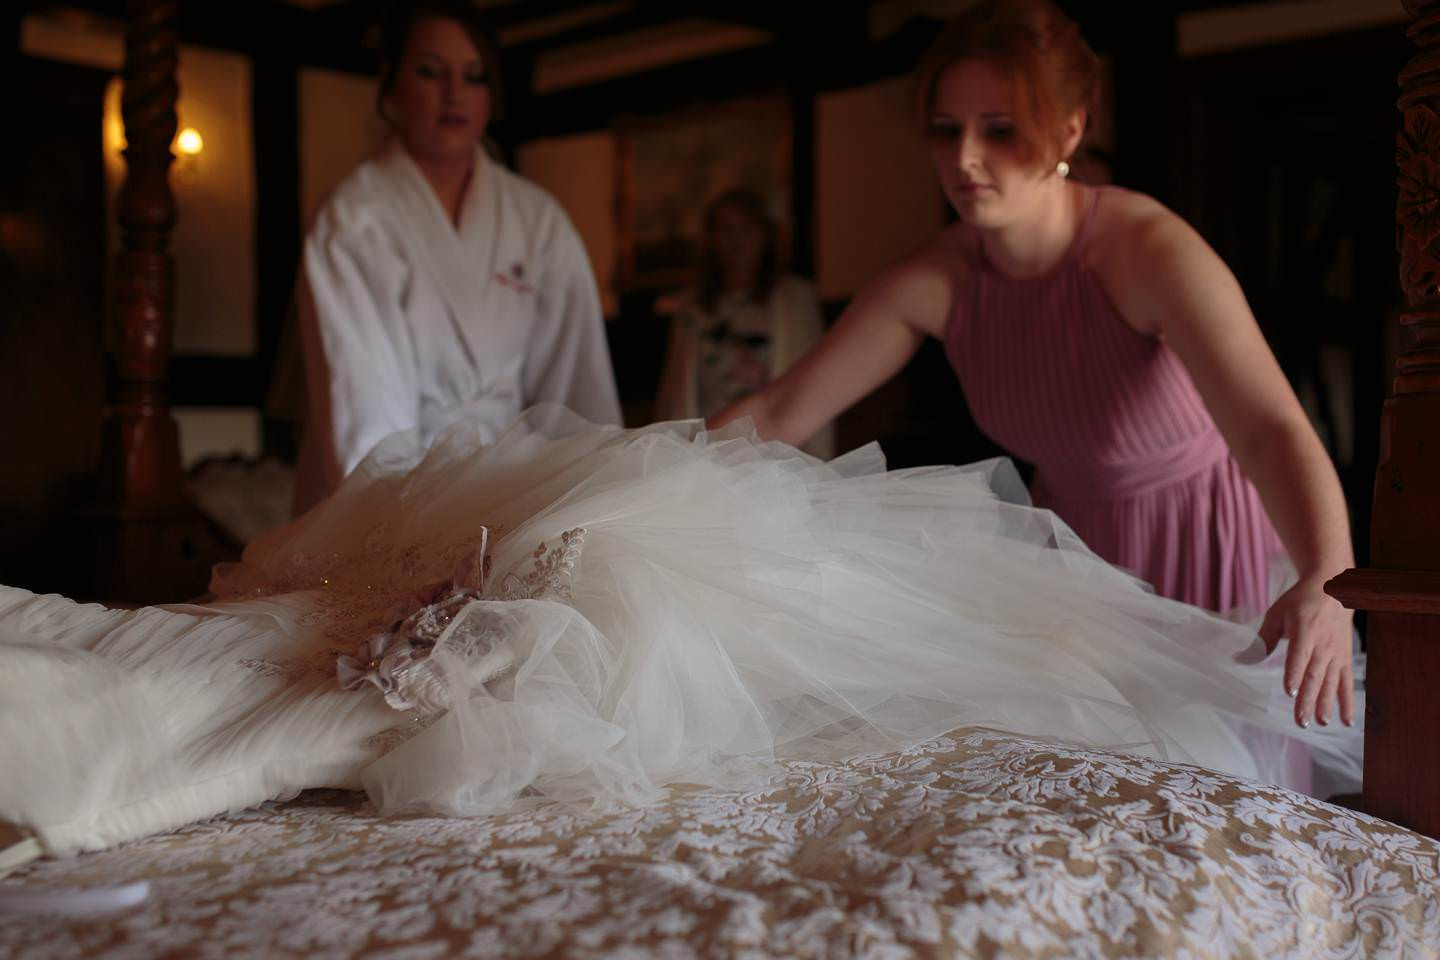 shropshire wedding photography at the Albright Hussey with Shropshire Wedding photographer pbartworks